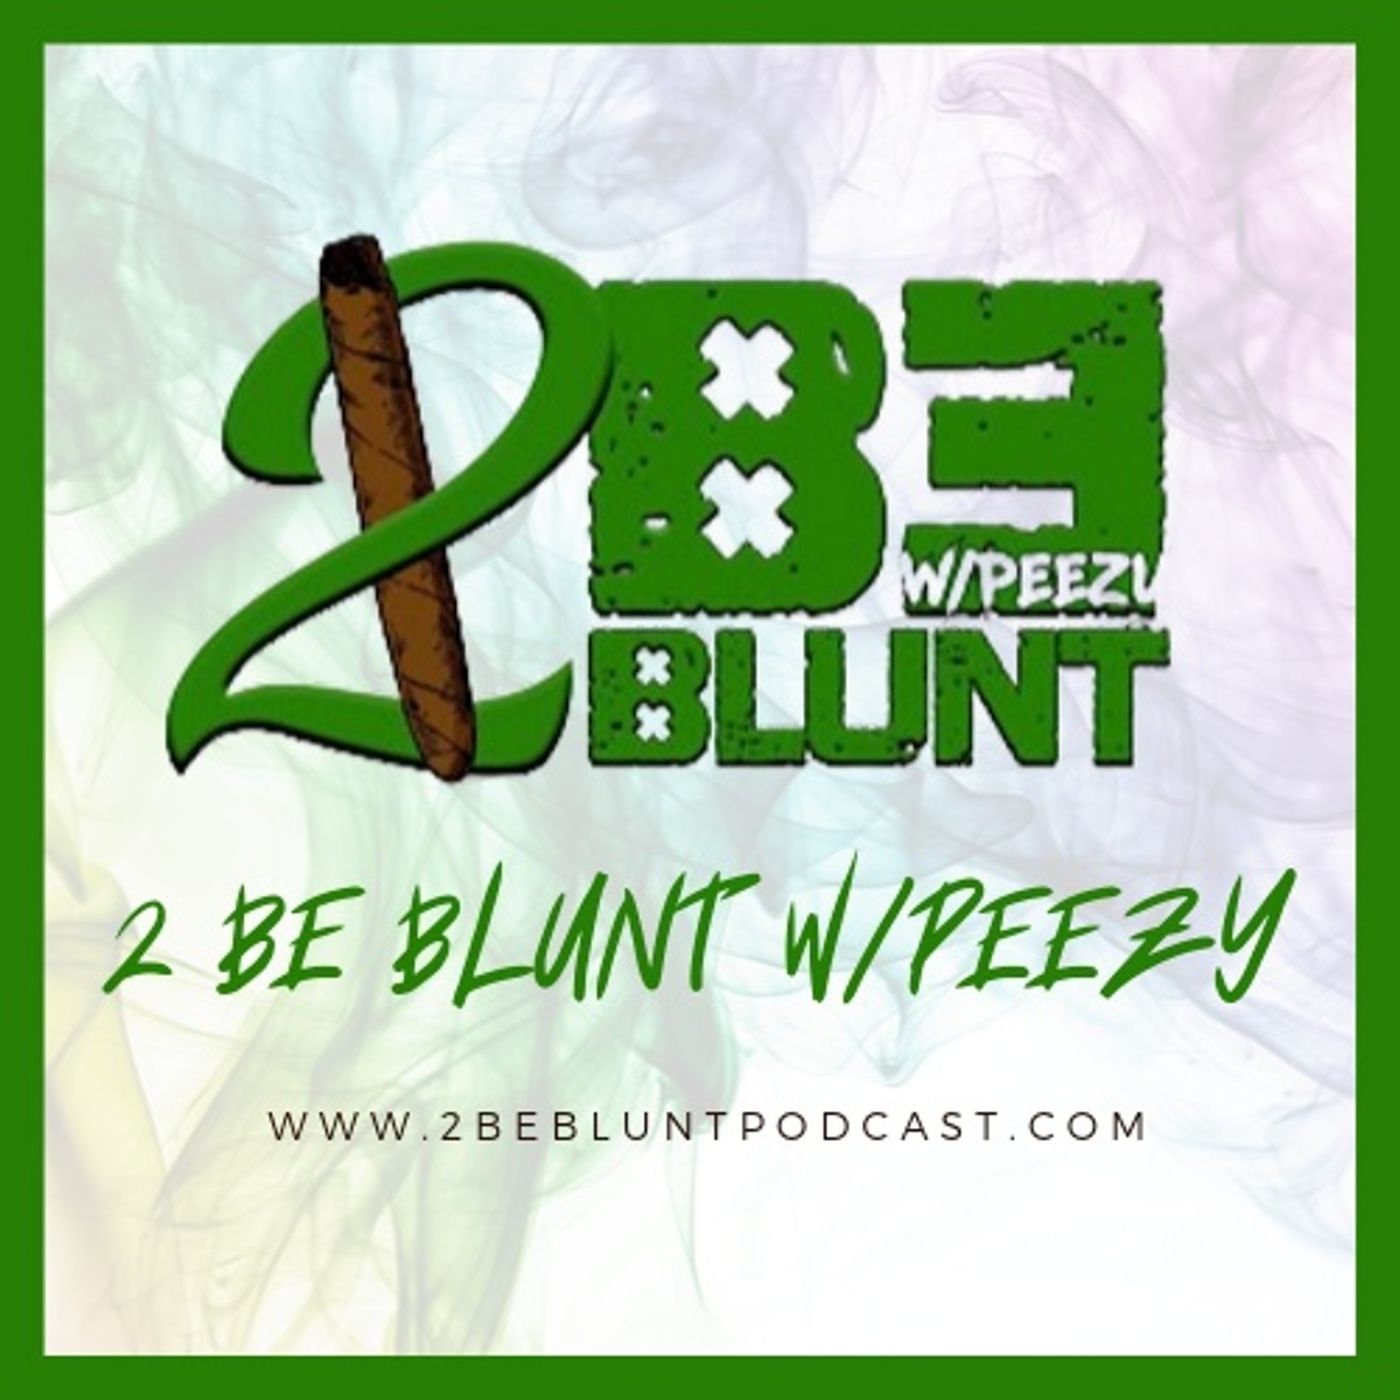 Episode 24: Bad Weed Bummer